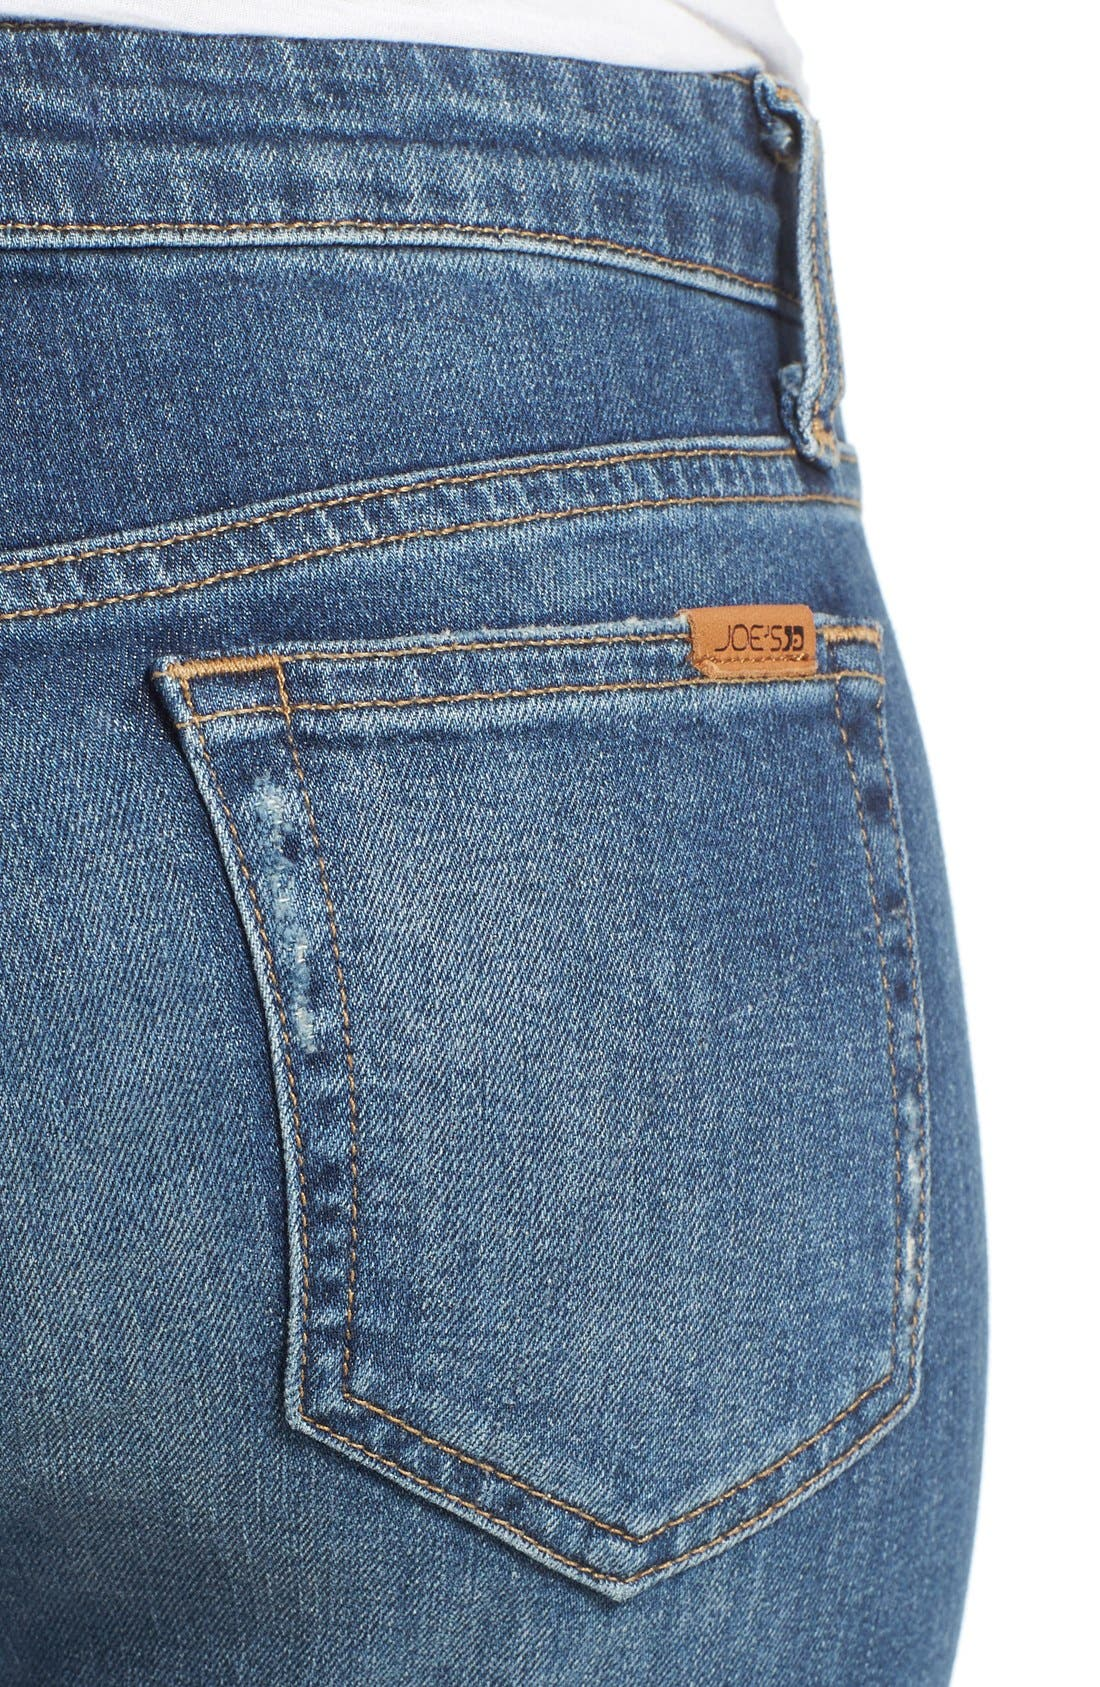 'Icon' Distressed Crop Skinny Jeans,                             Alternate thumbnail 5, color,                             430